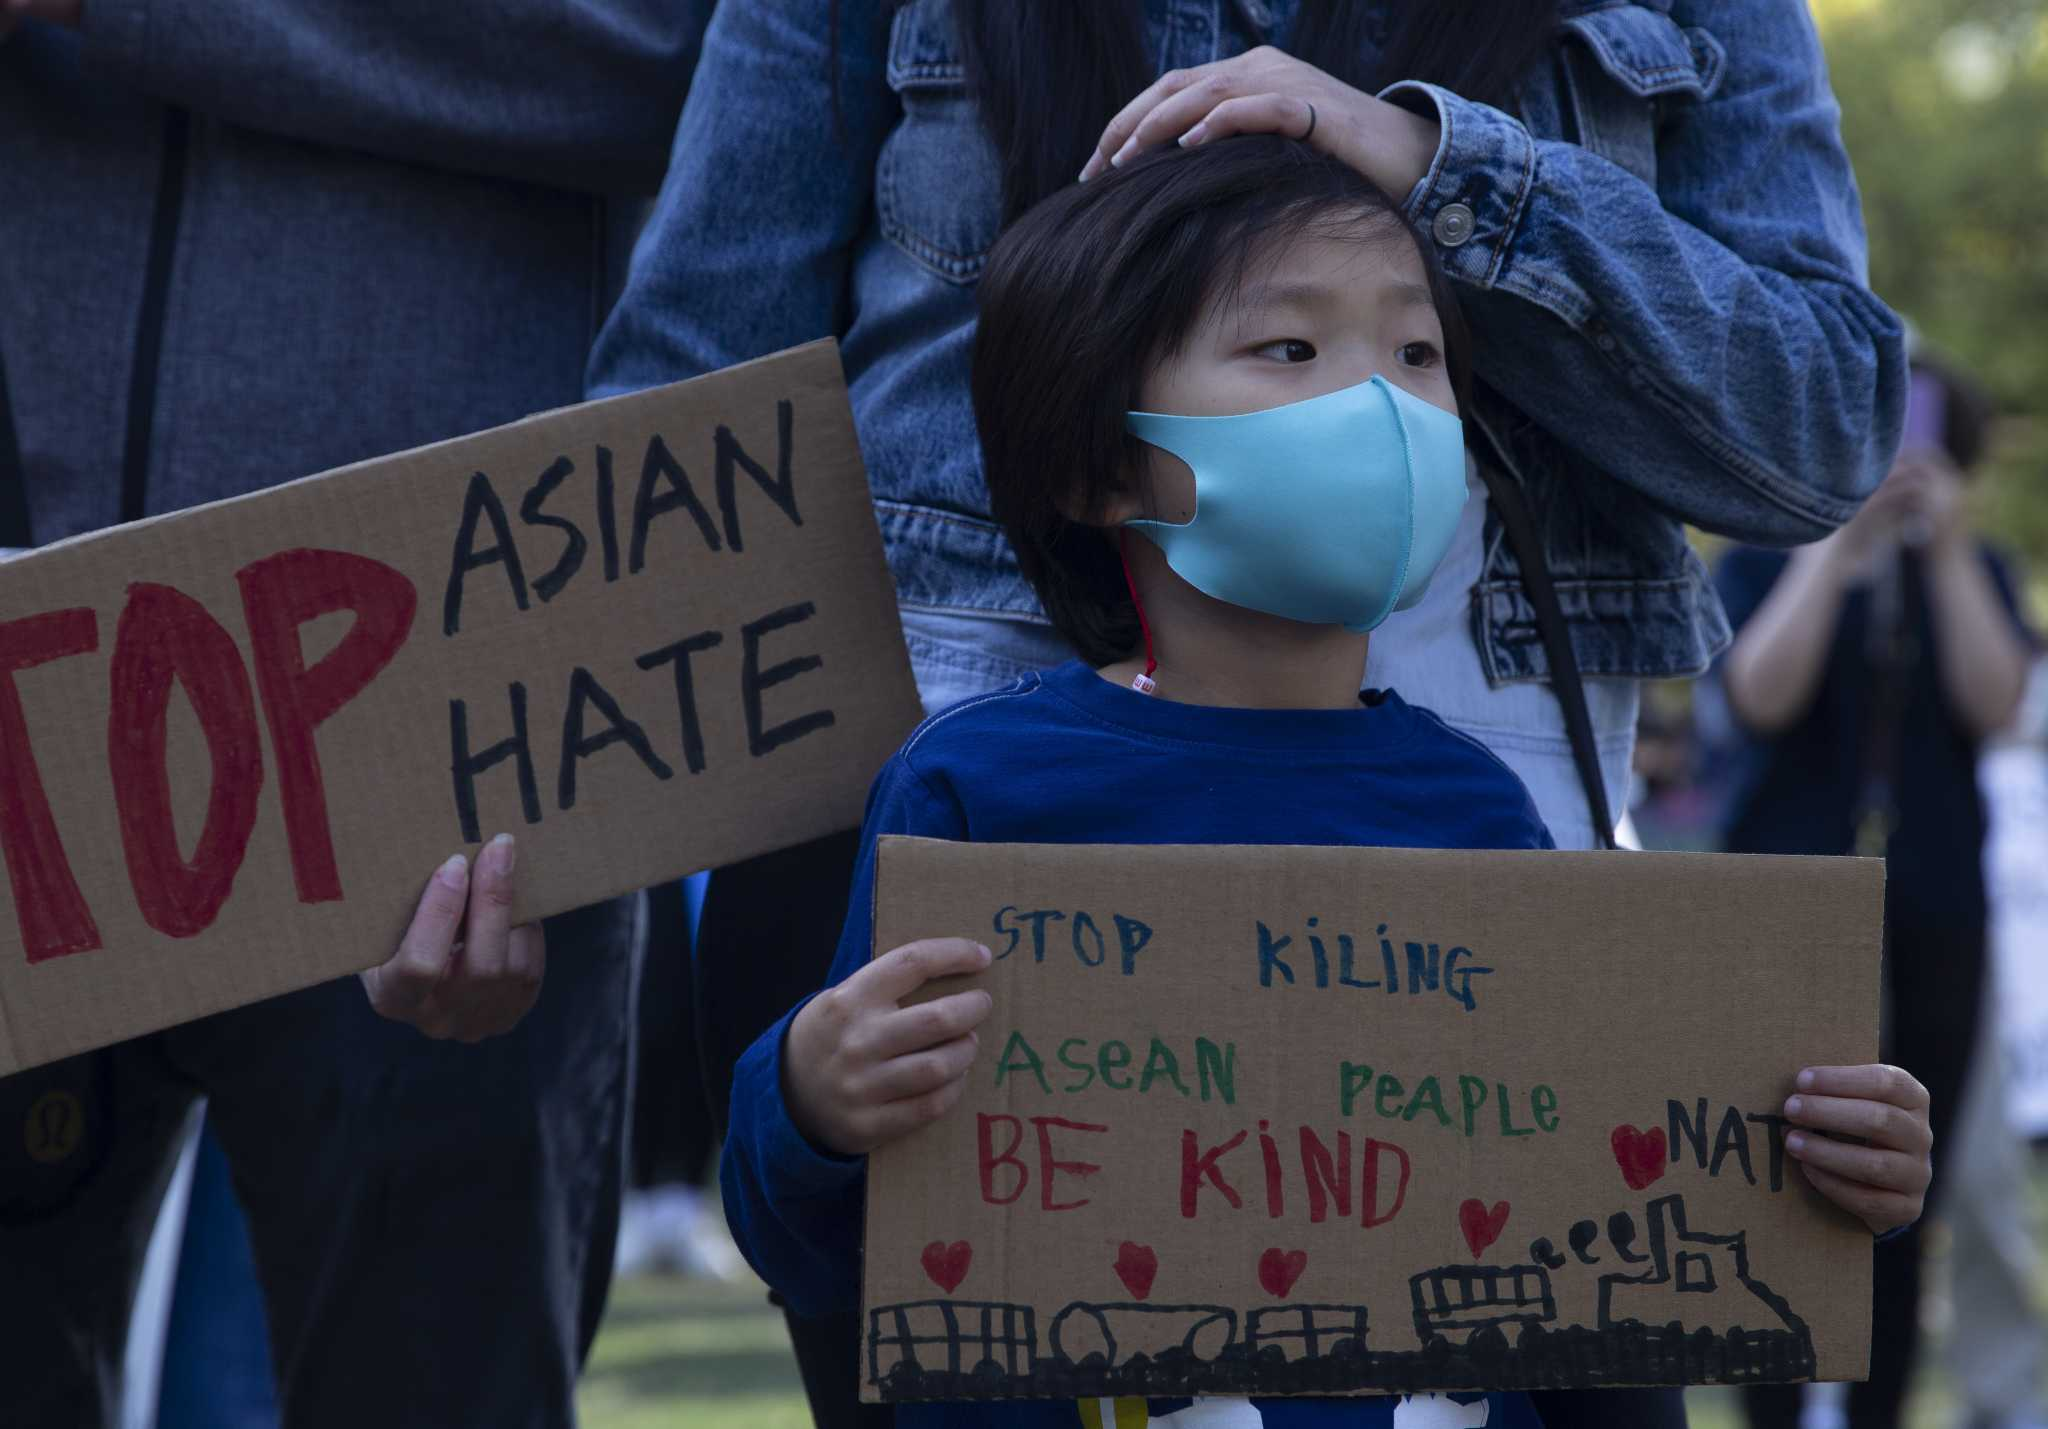 www.houstonchronicle.com: Photos: 'Stop Asian Hate' vigil, rally held at Discovery Green